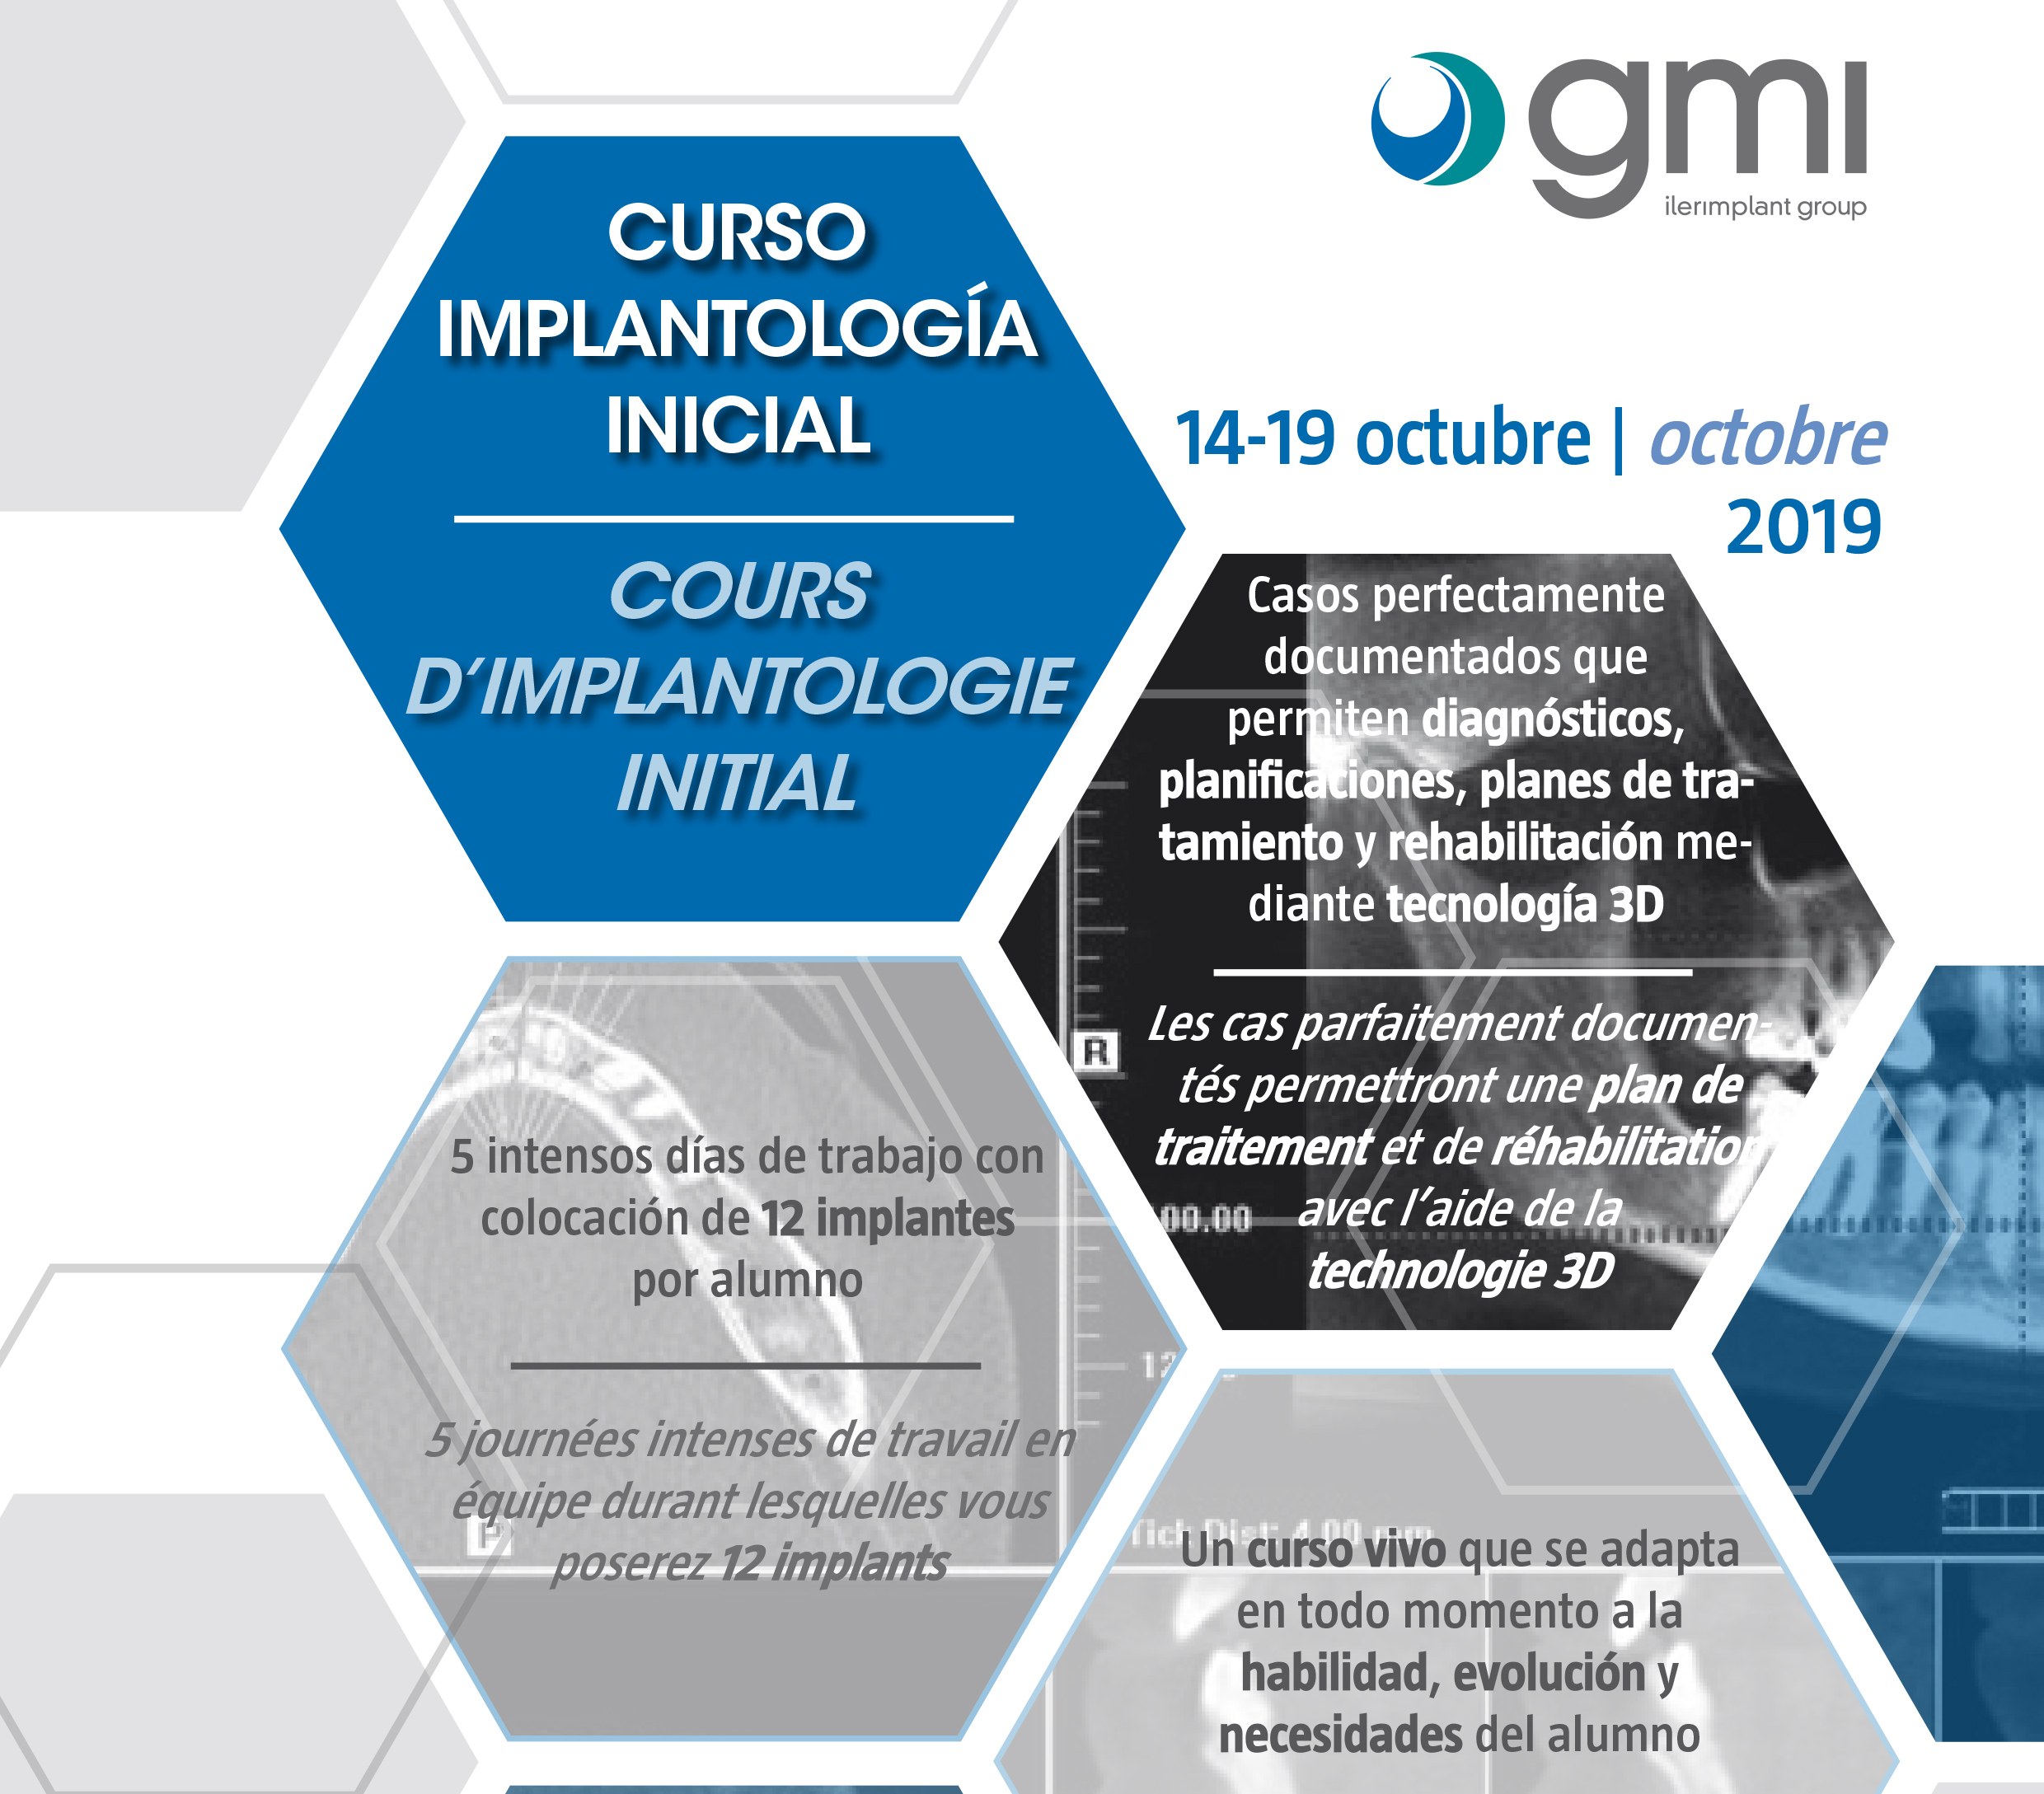 New implantology course in Málaga